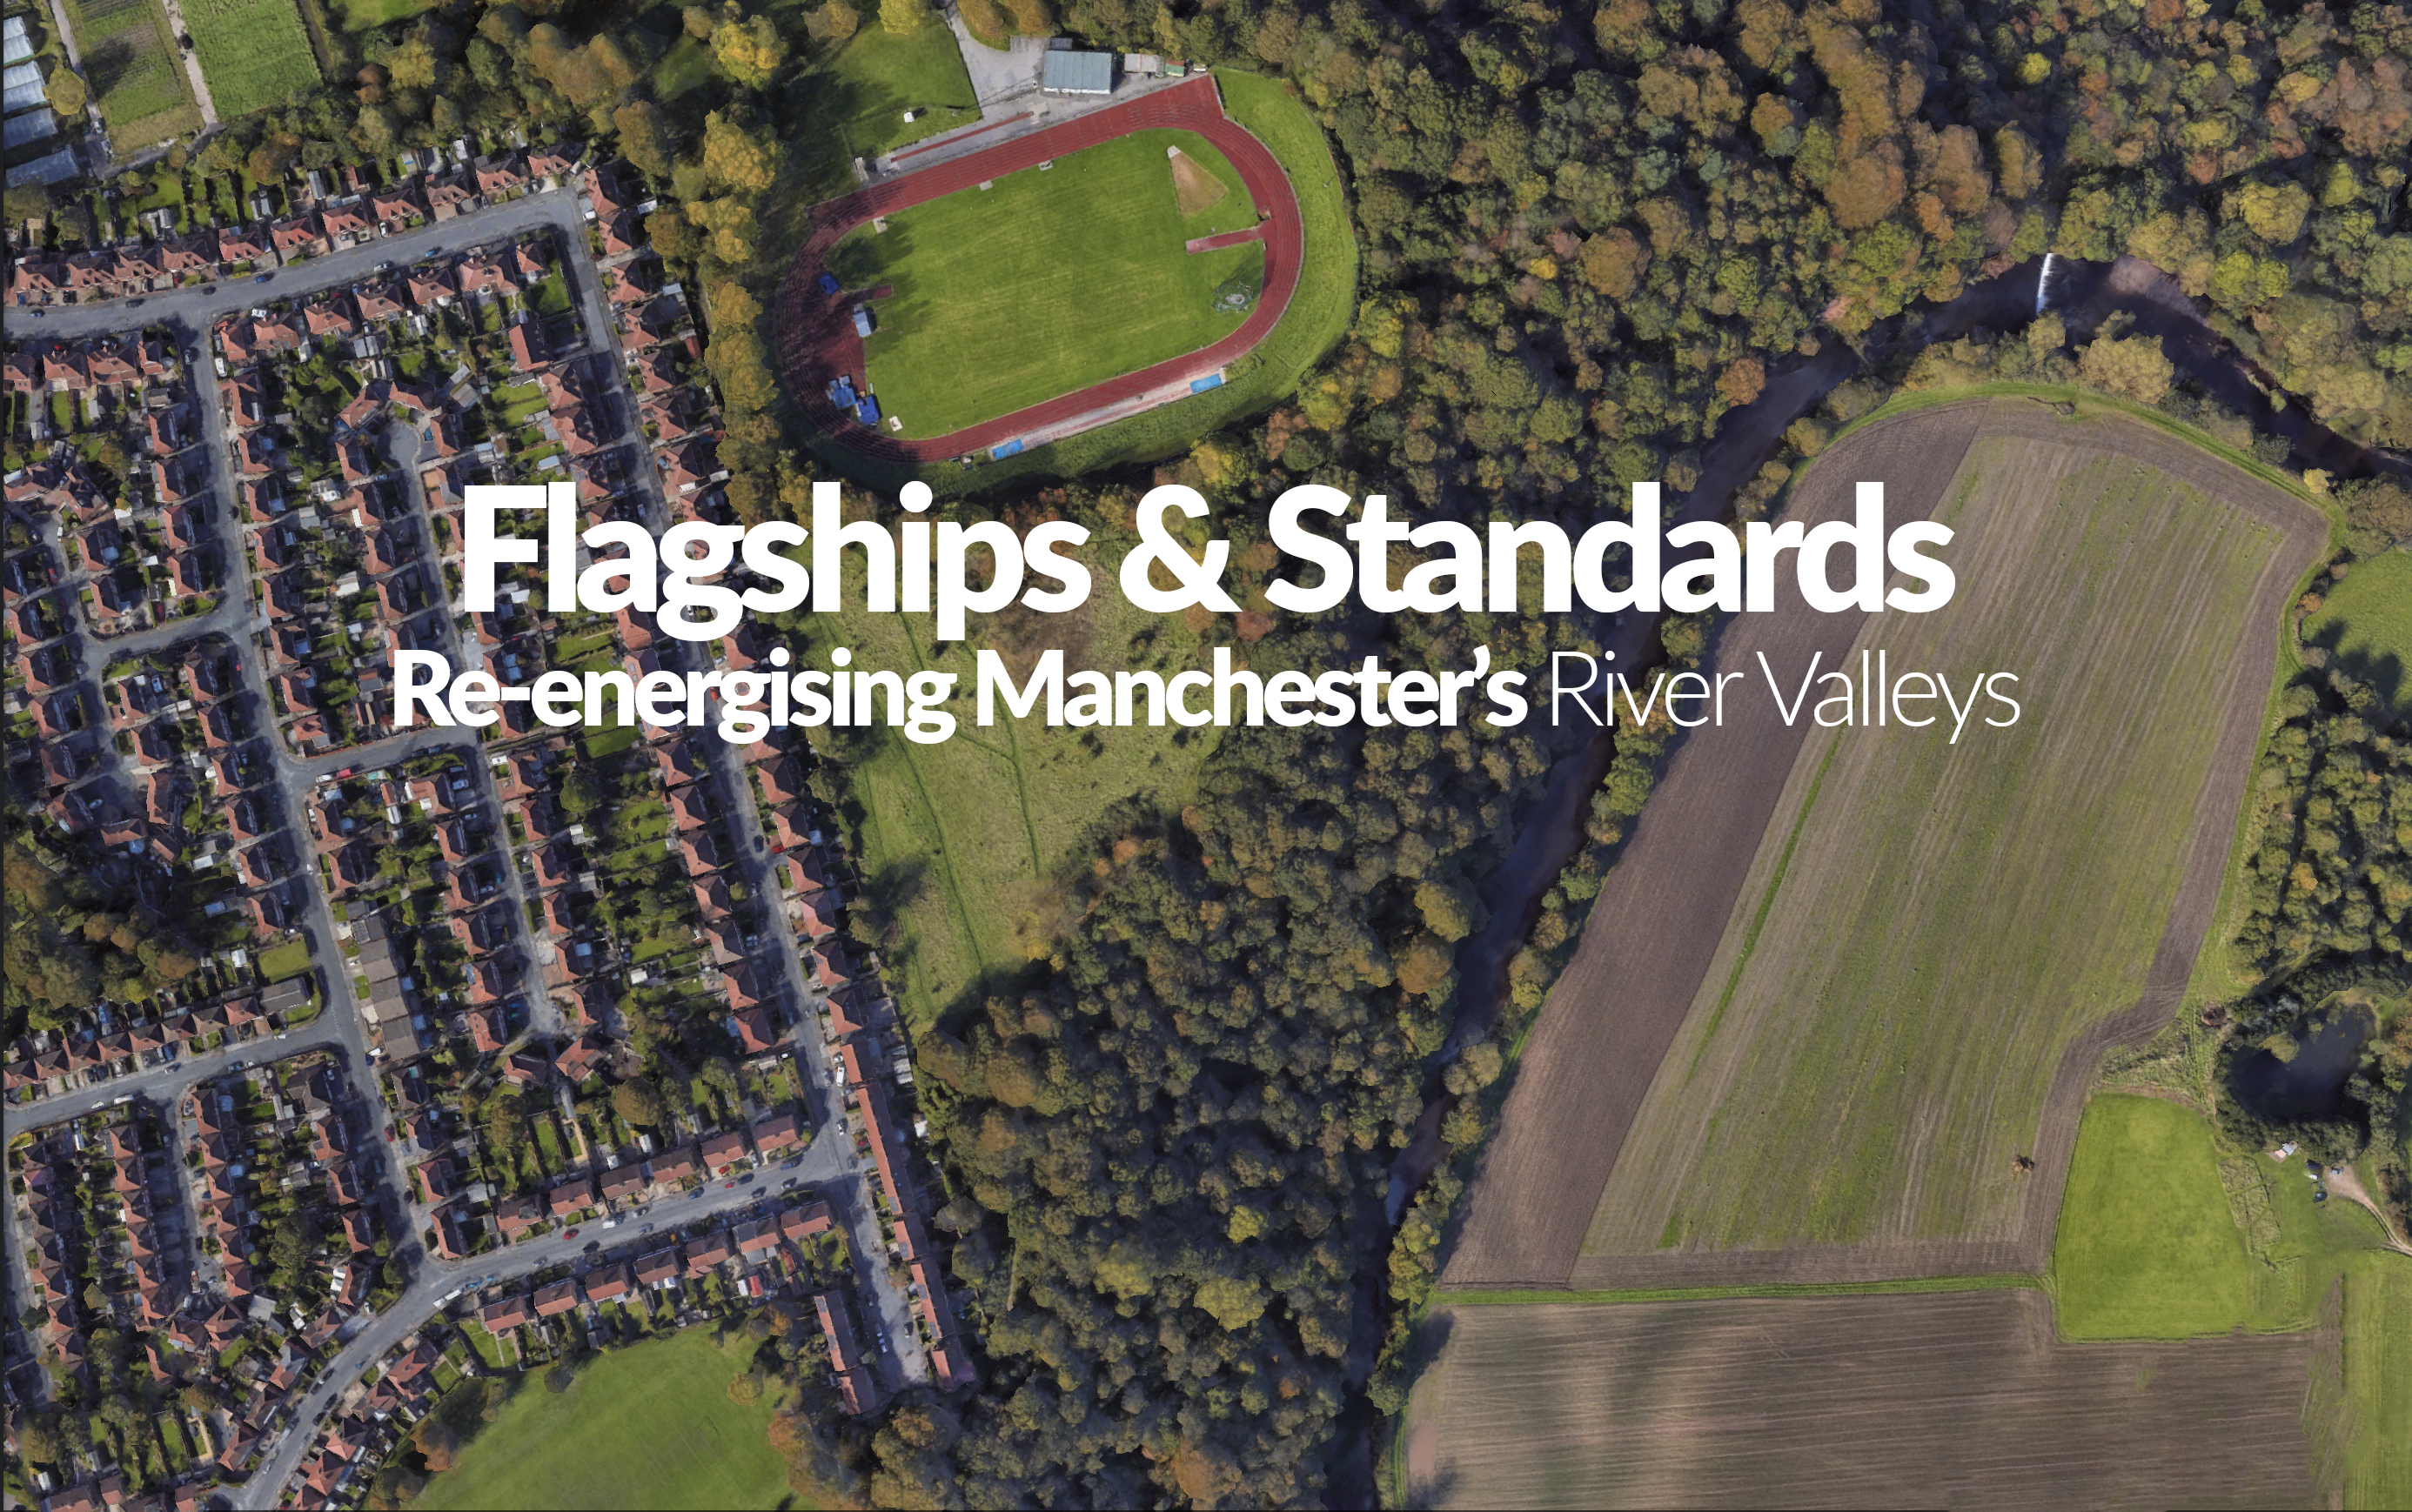 BLOG: Re-energising Manchester's River Valleys: A Flagship Initiative